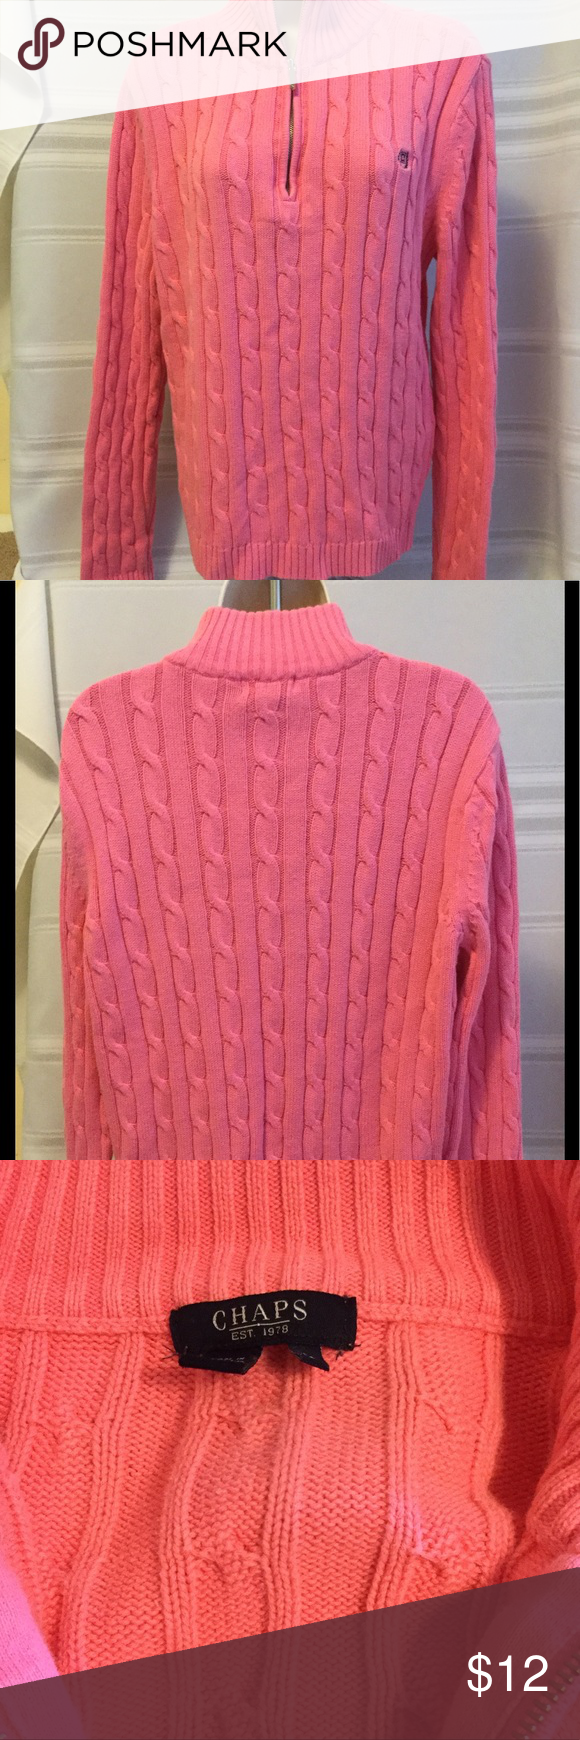 Chaps - Coral/Pink Turtleneck Sweater. Sz L | Coral pink, Coral ...